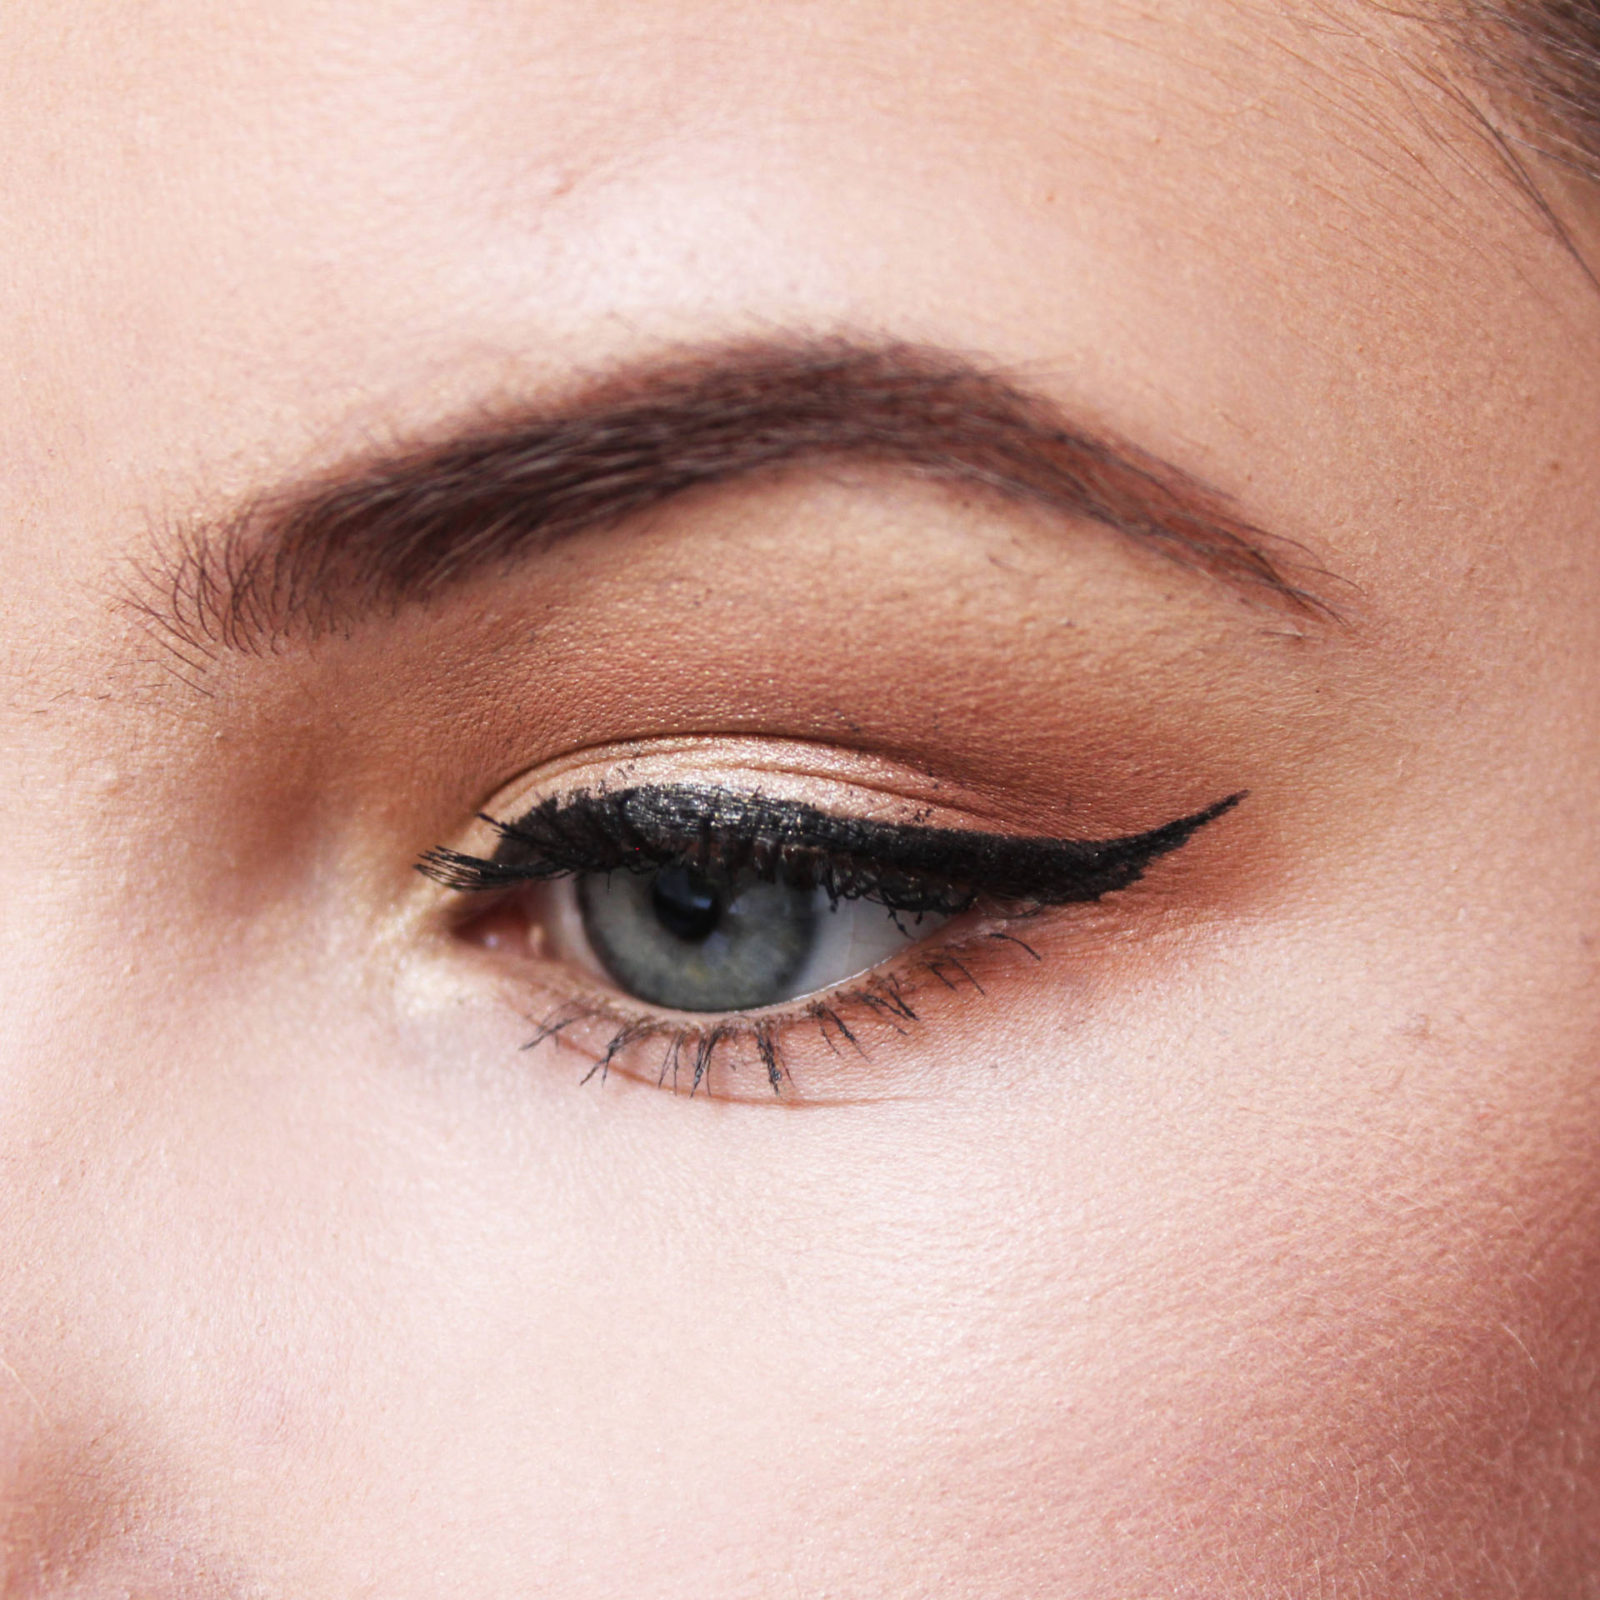 Eylure Brow Gel Eye Makeup Winged Liner